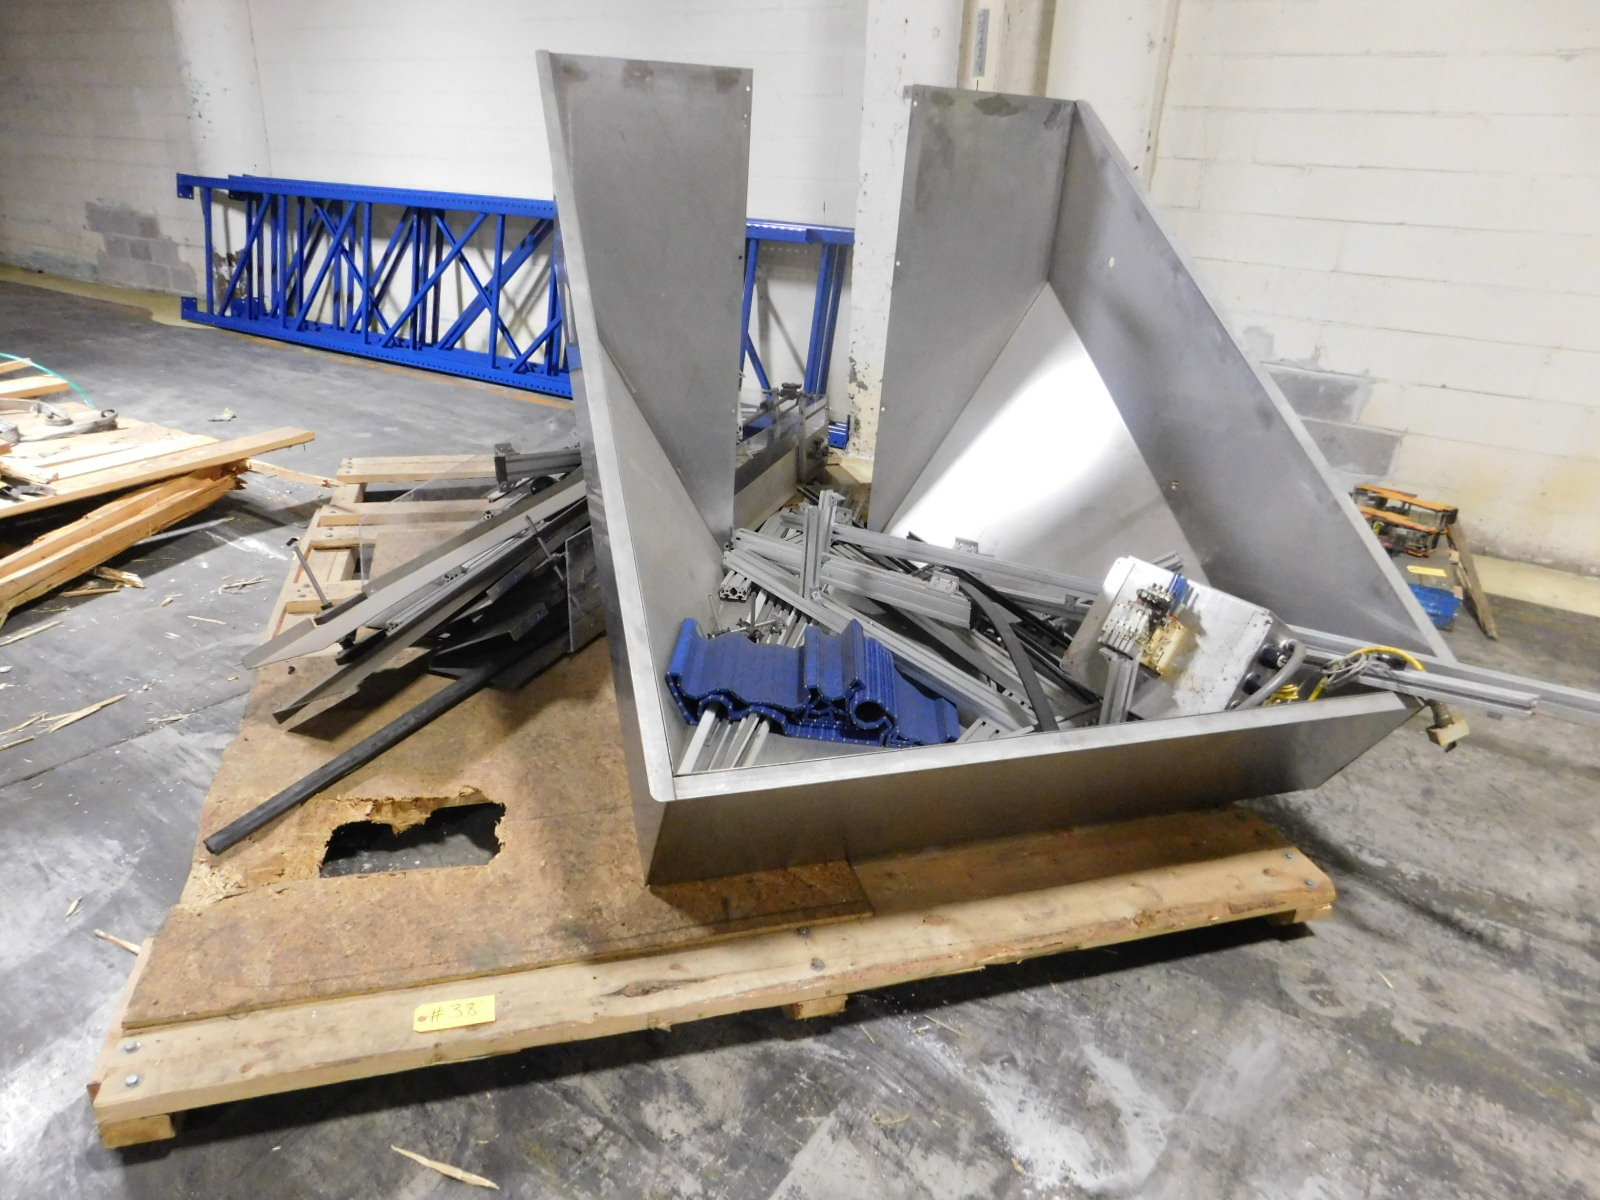 Lot 38 - Lot Hopper Stainless Steel & Misc Aluminum